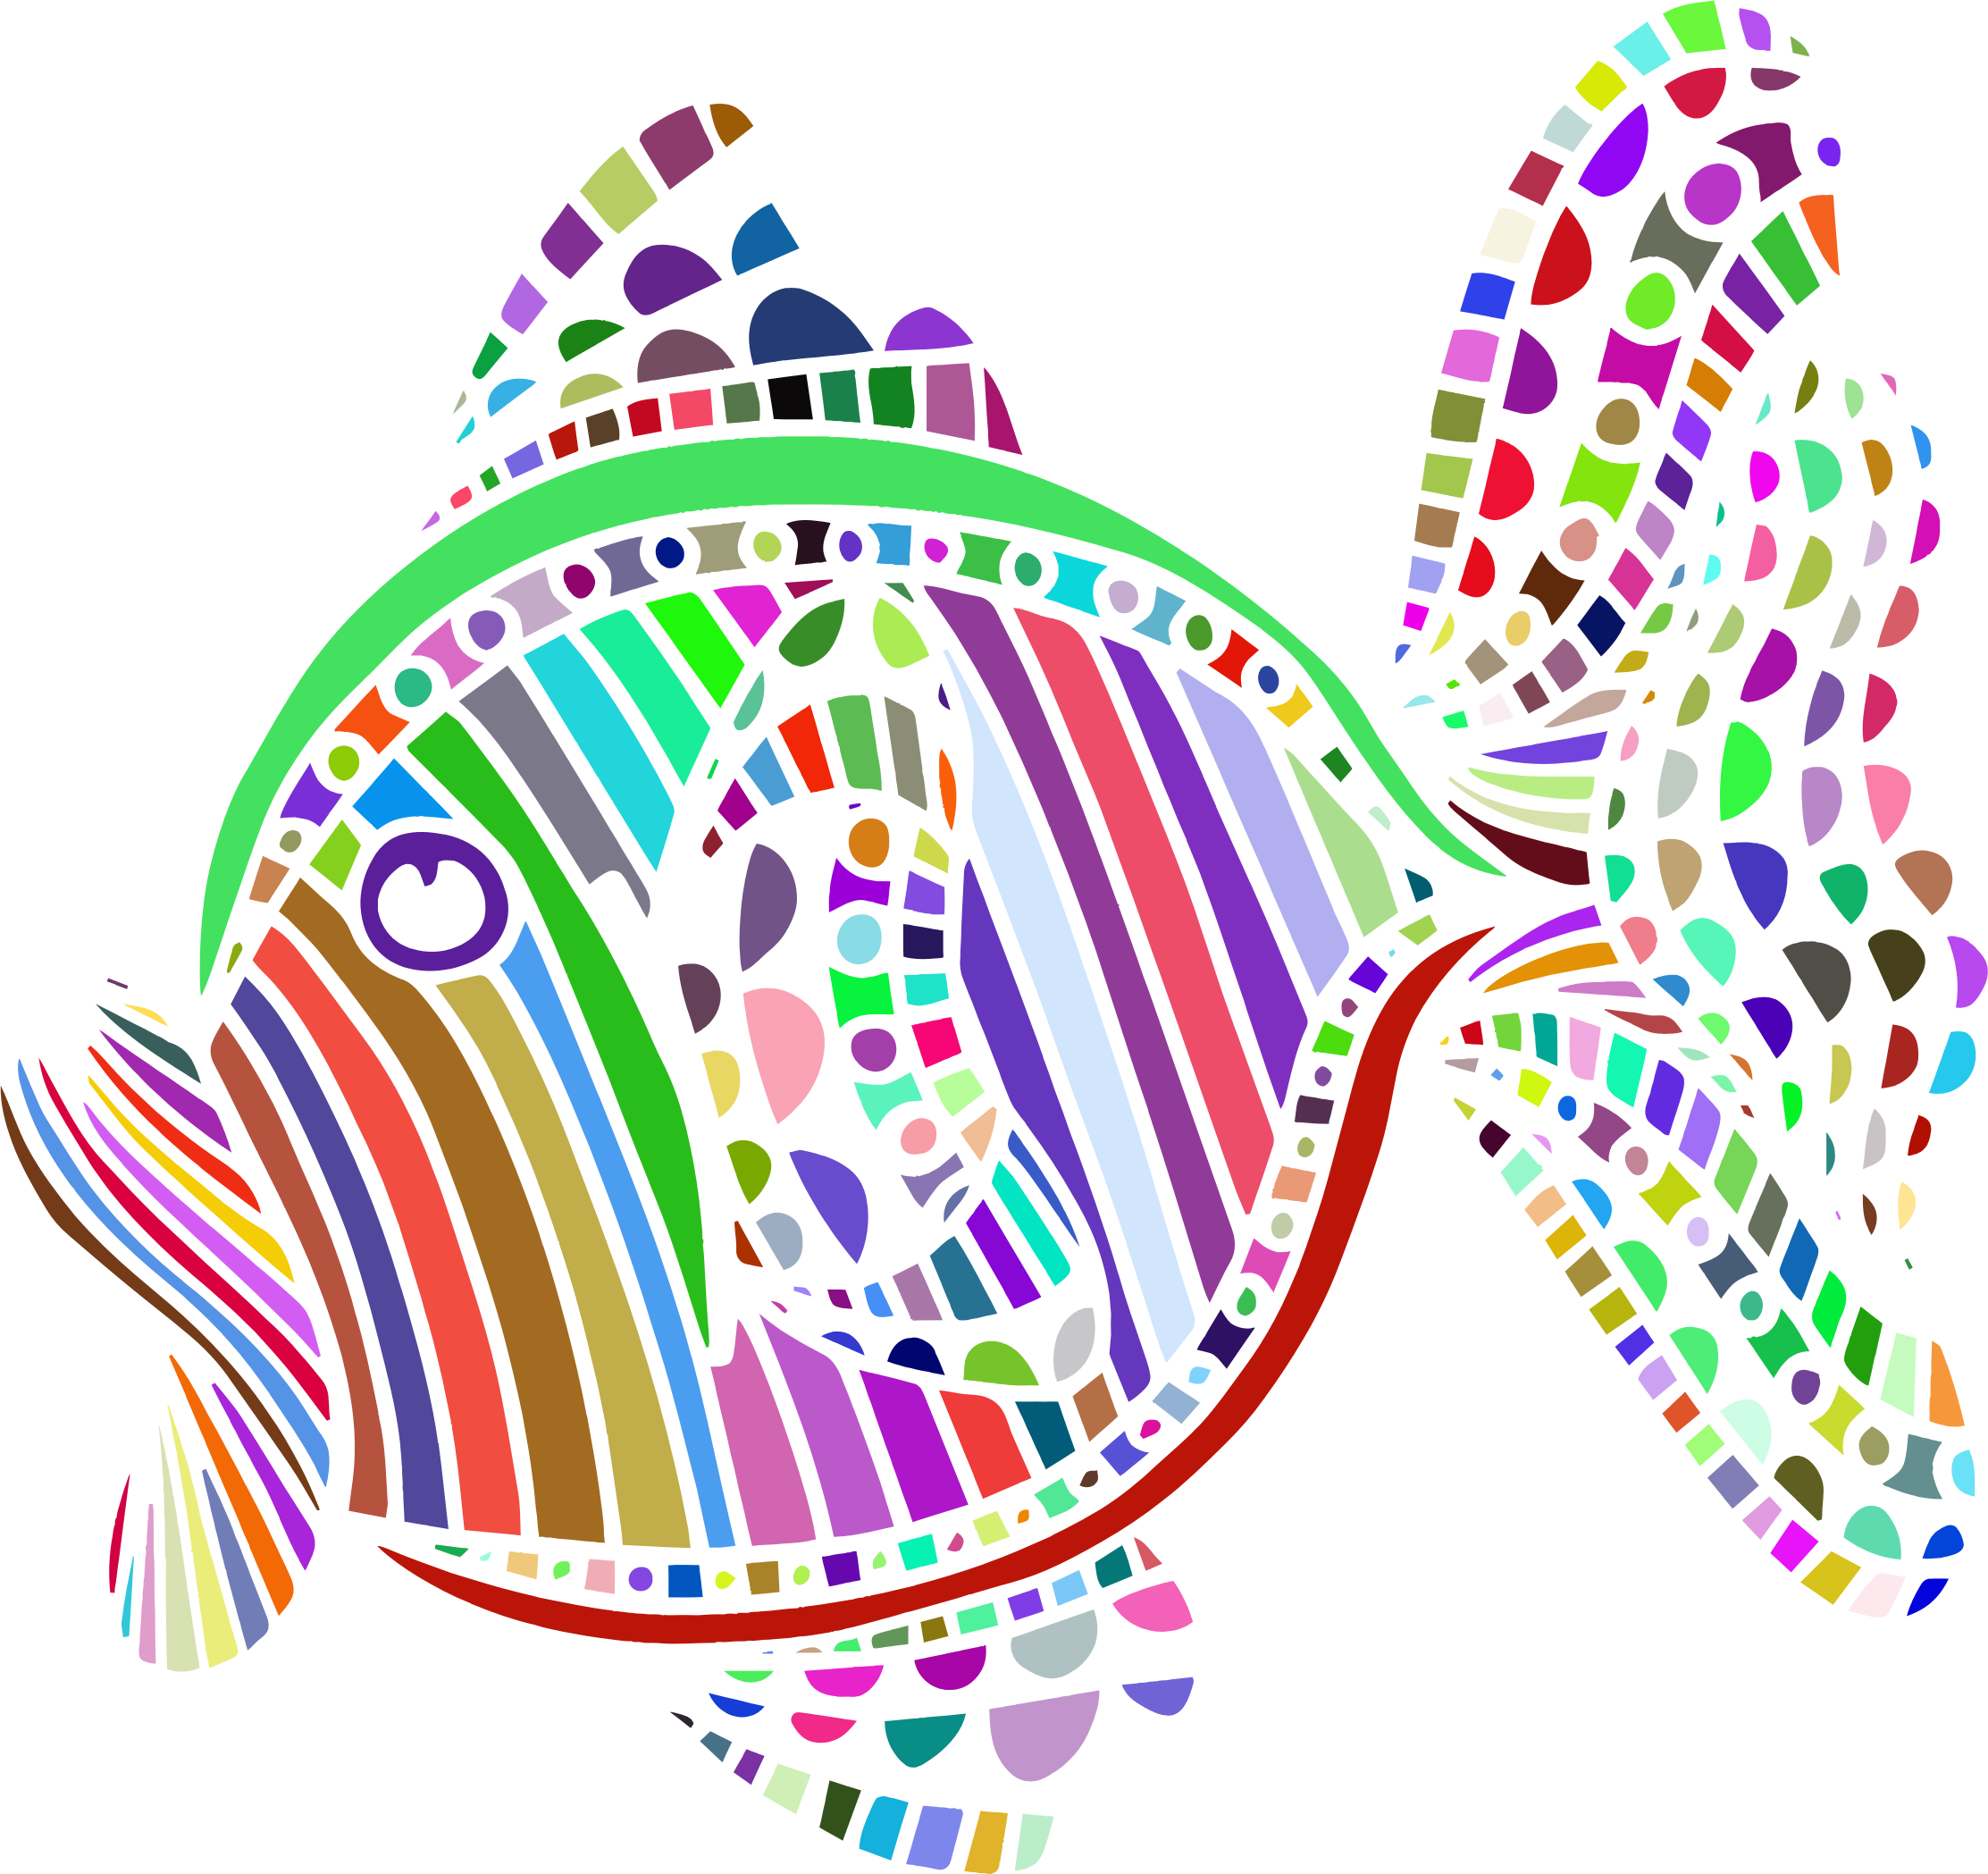 Abstract clipart The Clipart fish image colorful